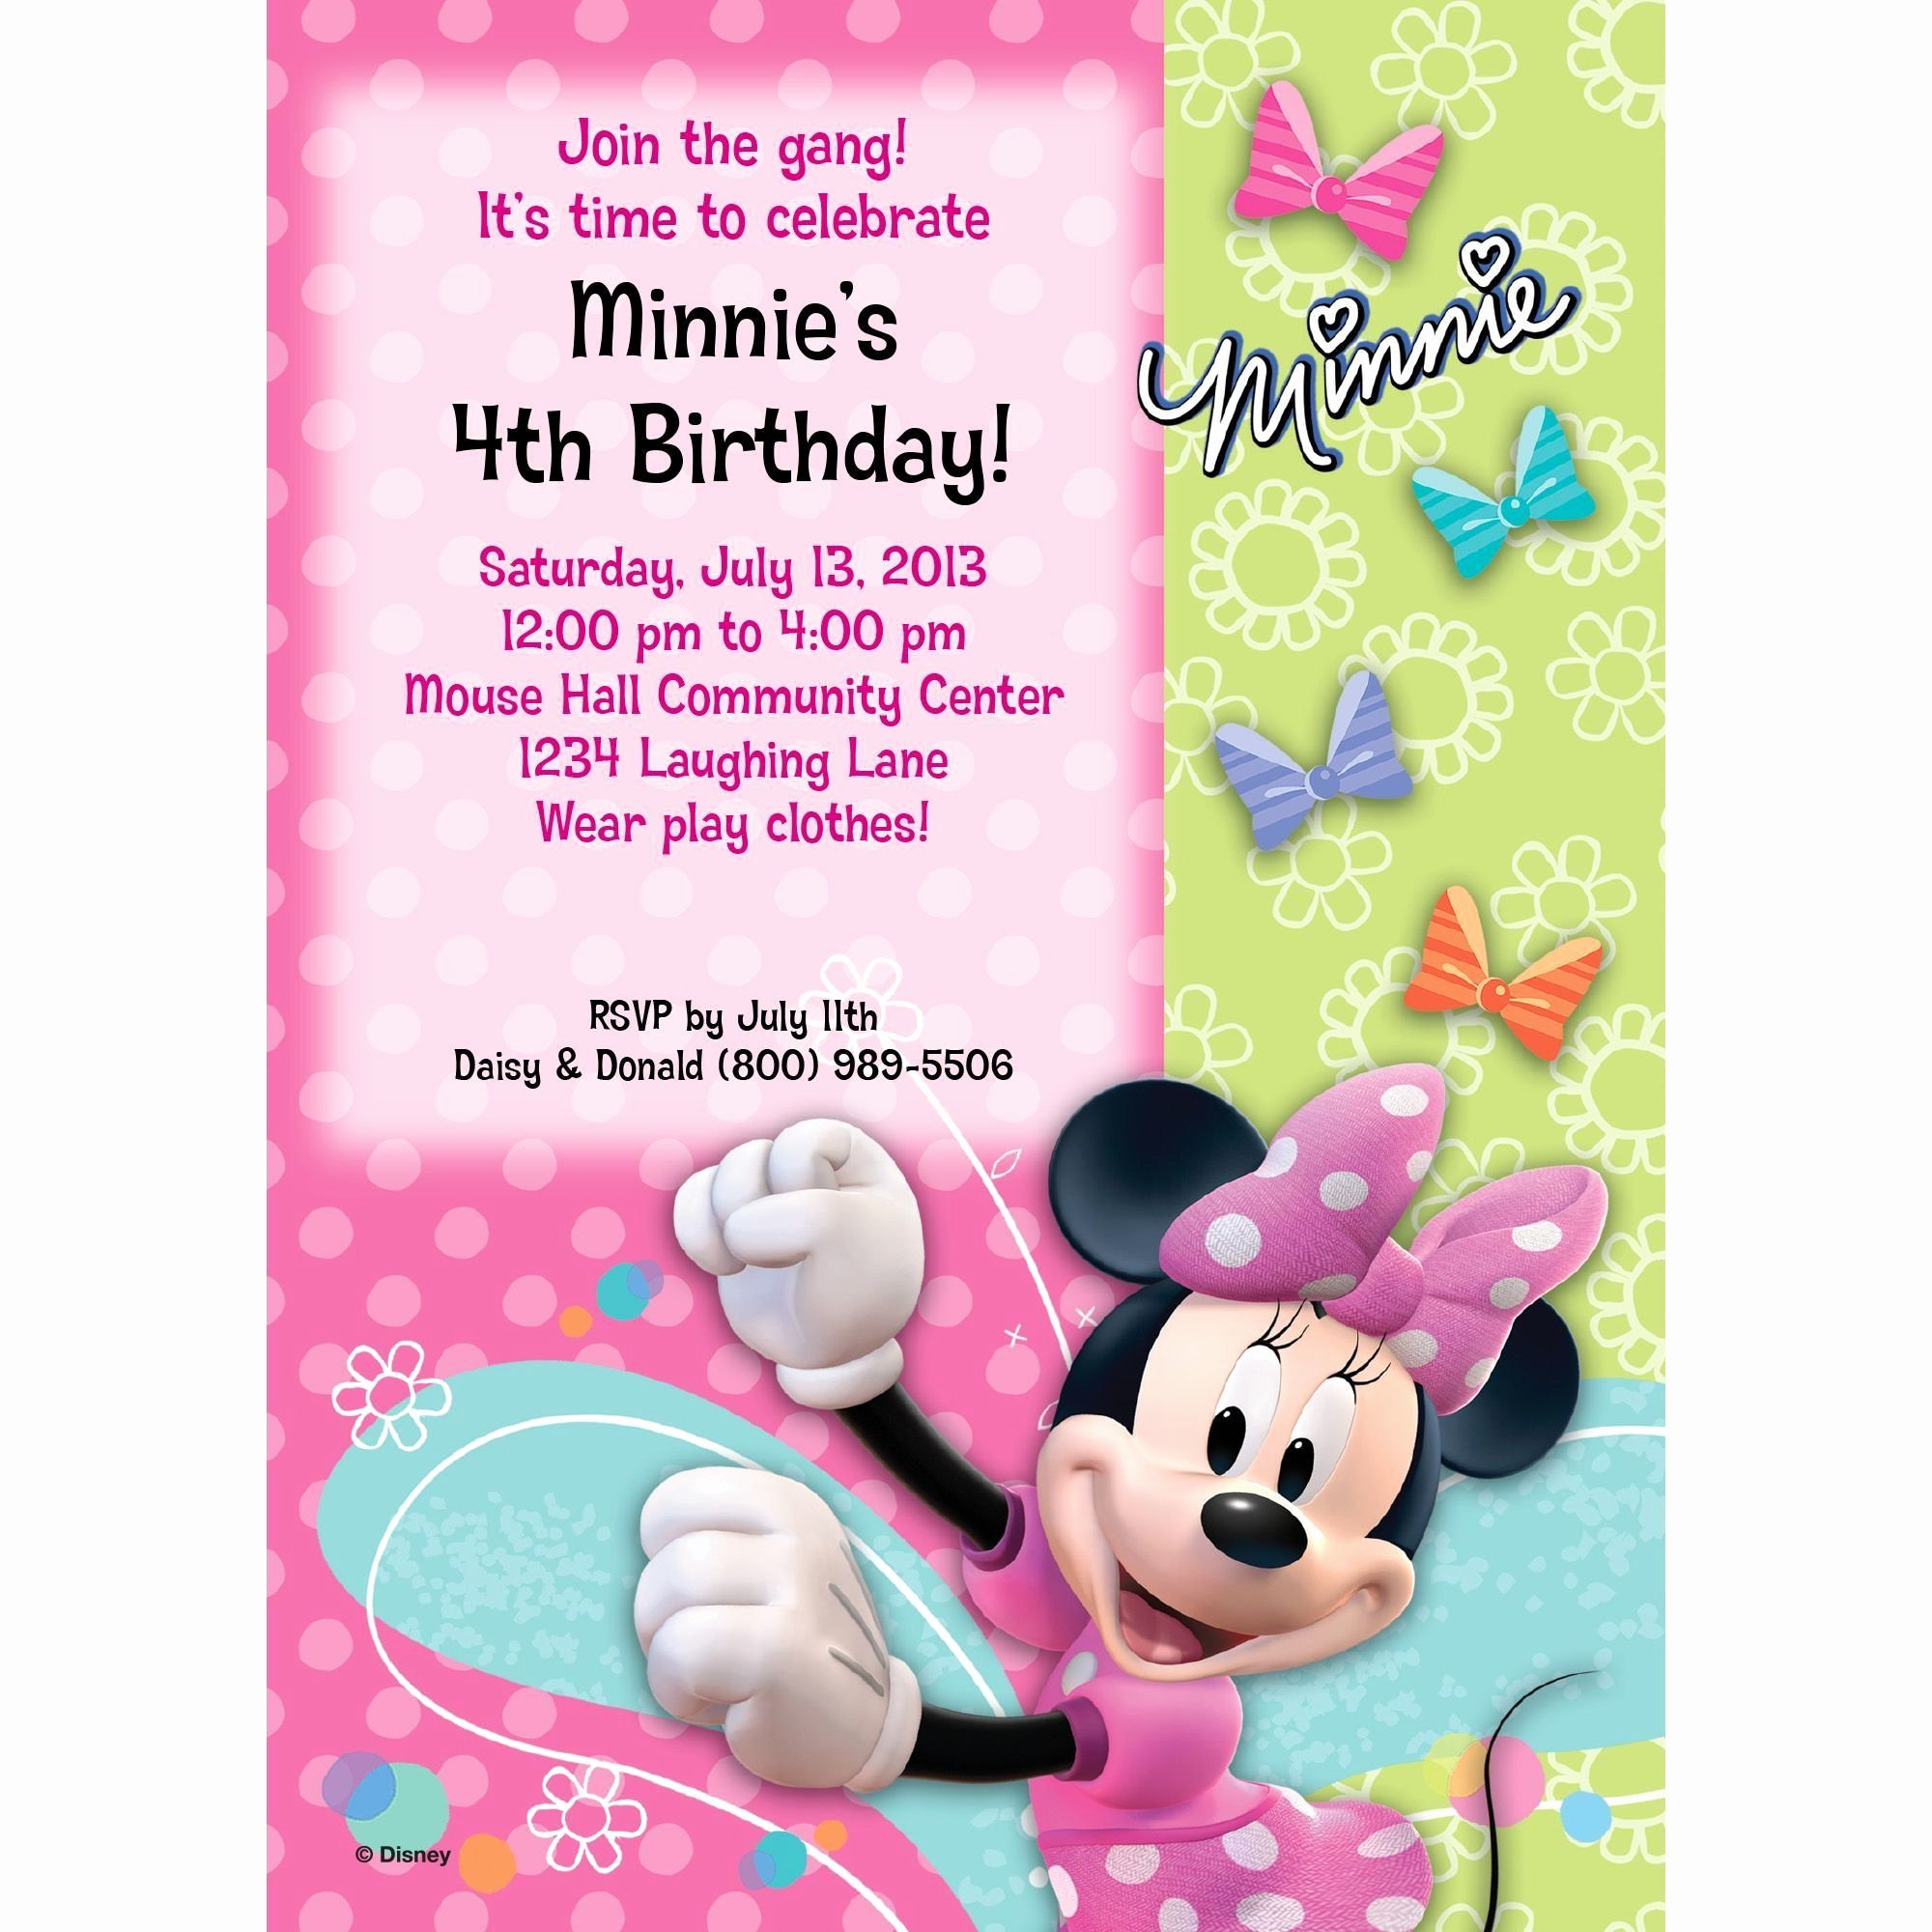 Free Minnie Mouse Invitations Personalized Elegant Minnie Mouse Birthday Party Supplies theme Party Packs